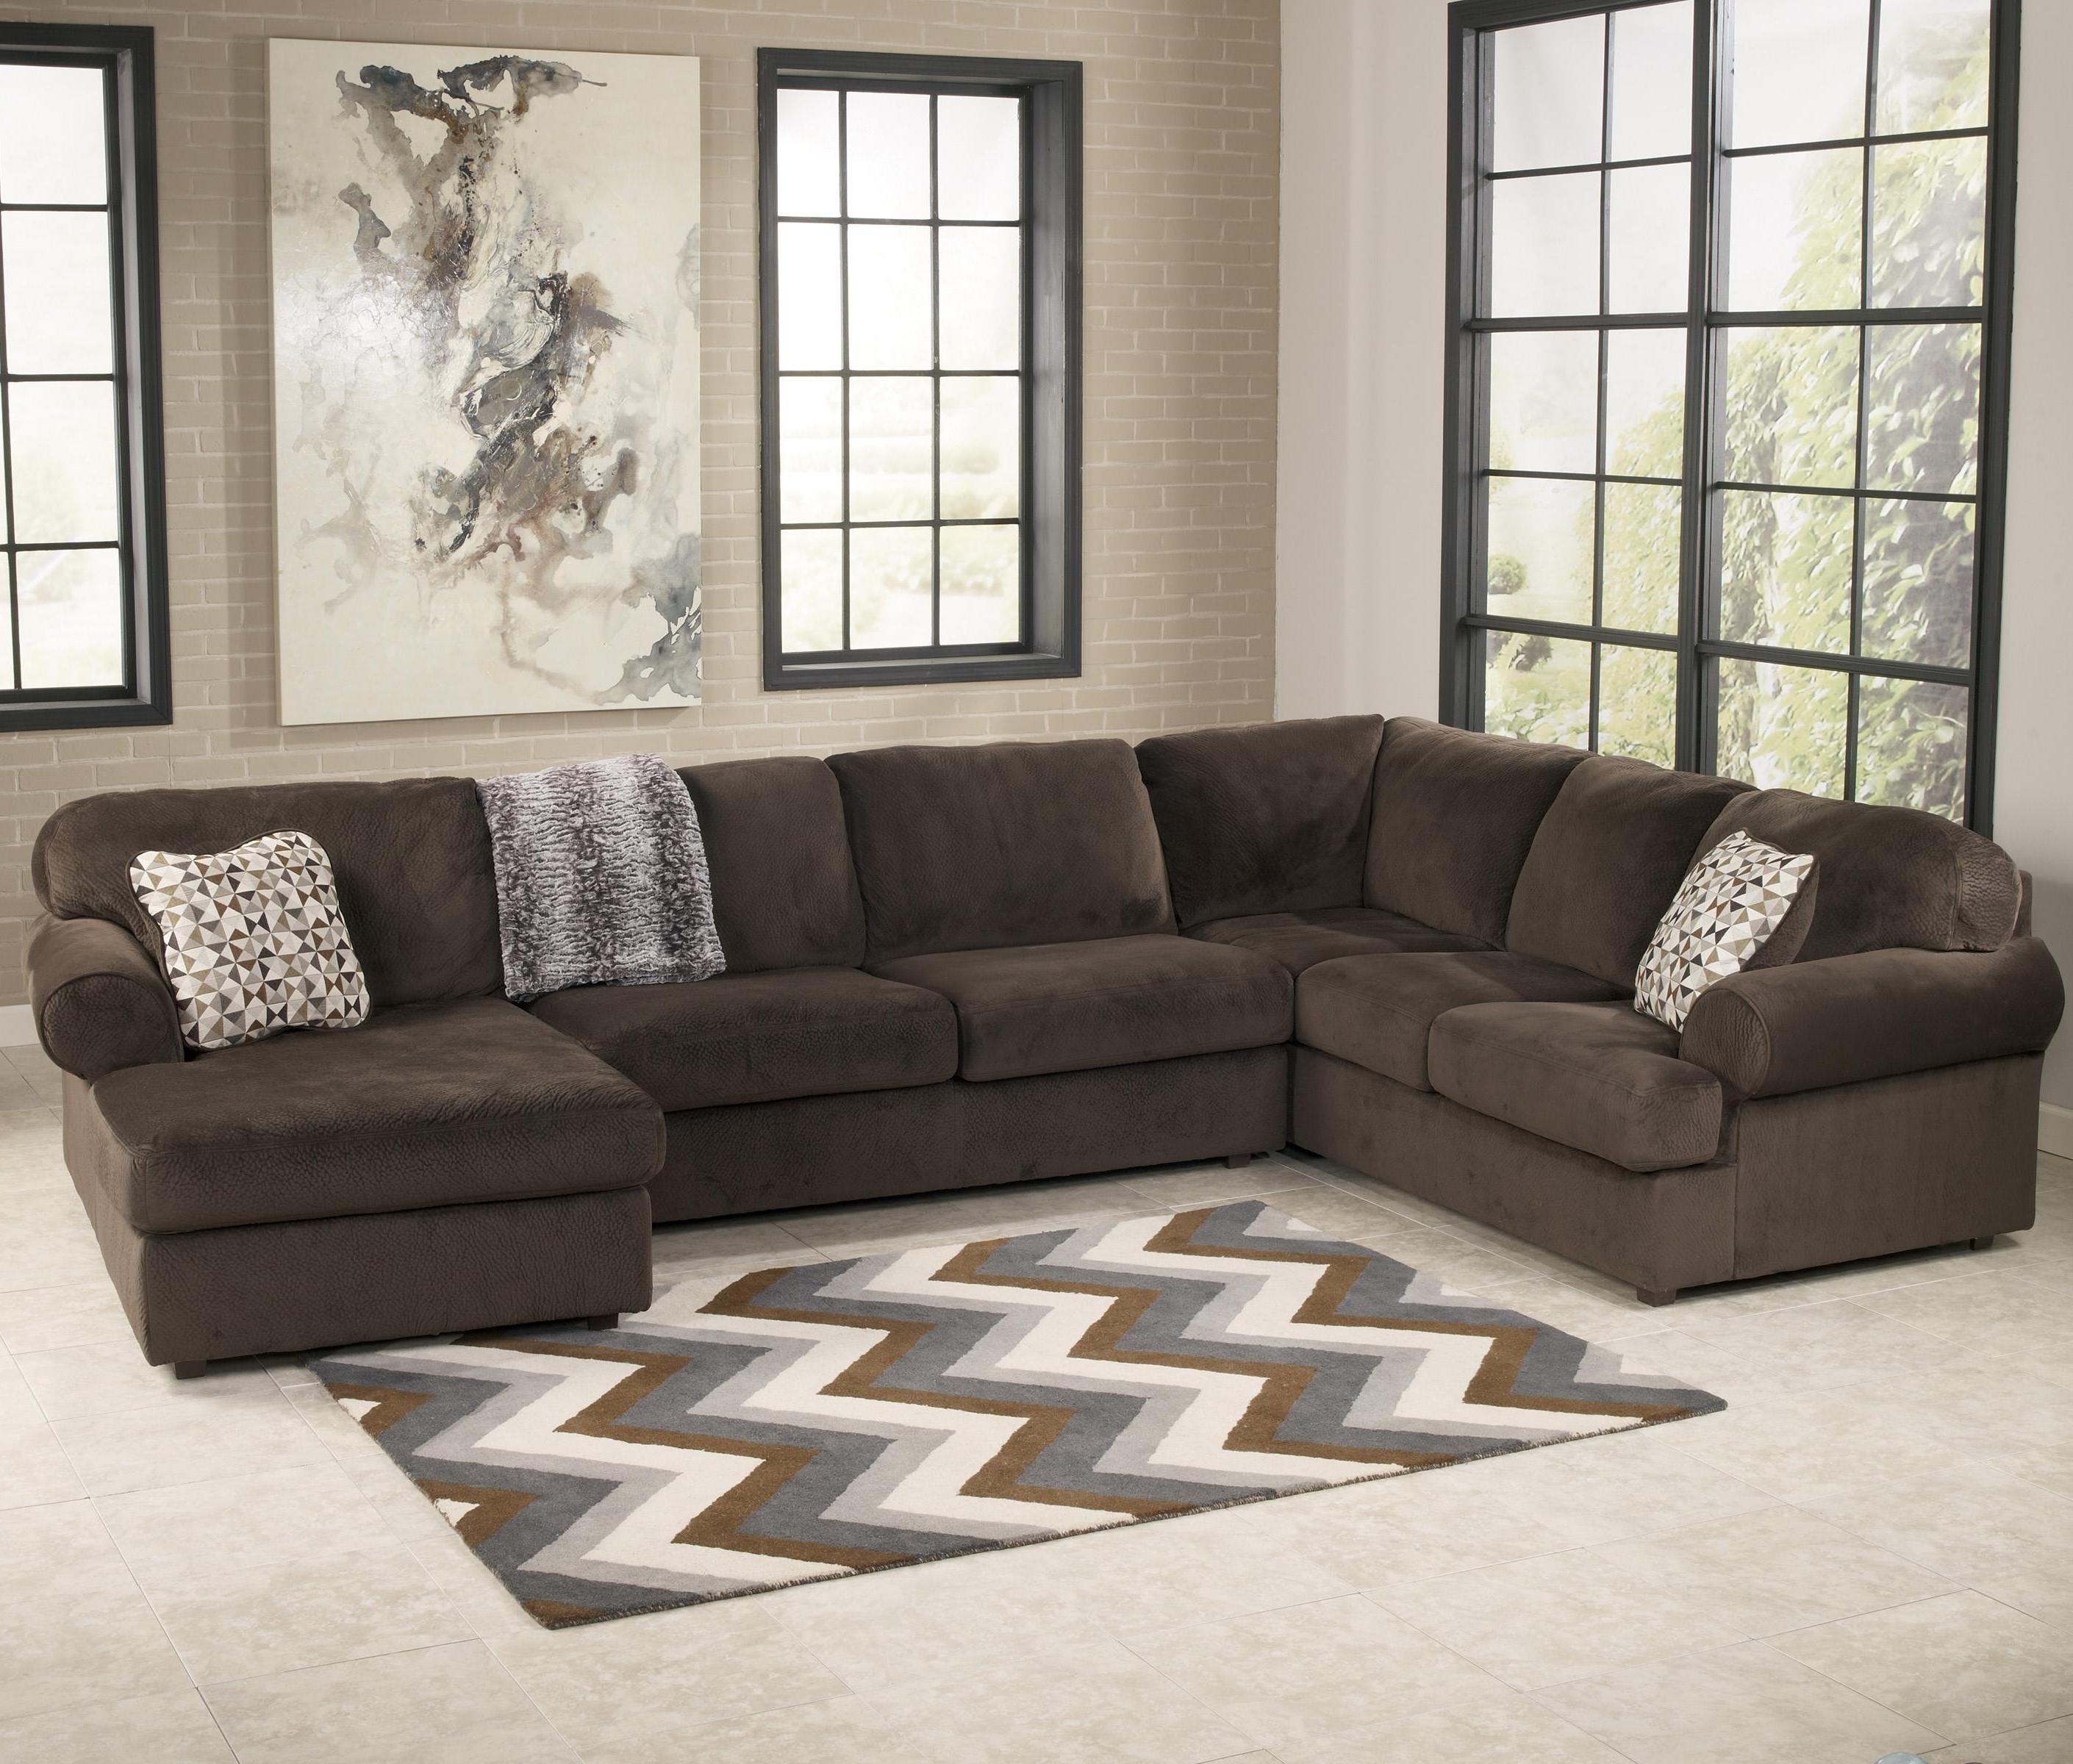 Right Sectional Sofa Sven Intuition Gray Scandinavian Furniture With Latest Regina Sectional Sofas (View 11 of 15)